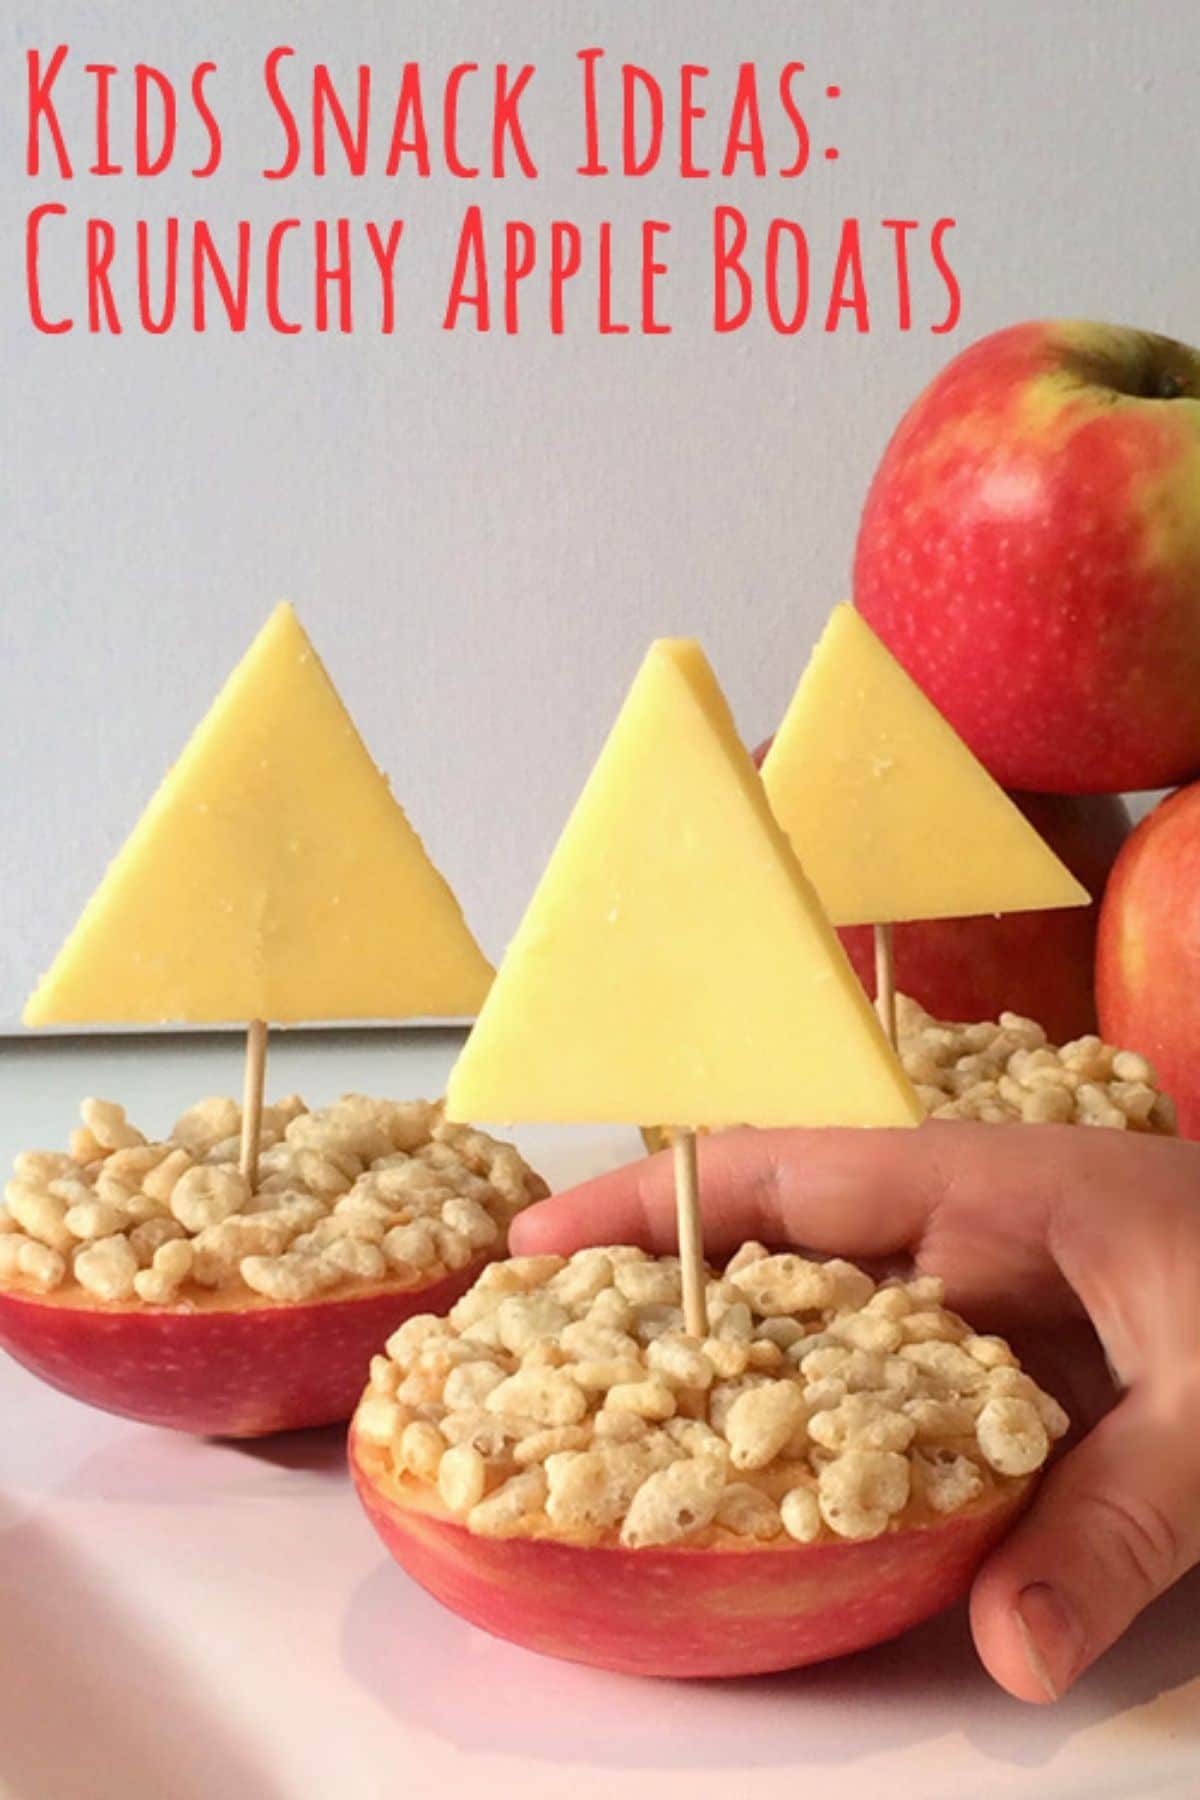 Apple halves stopped with peanut butter rice cereal and a triangle of cheese